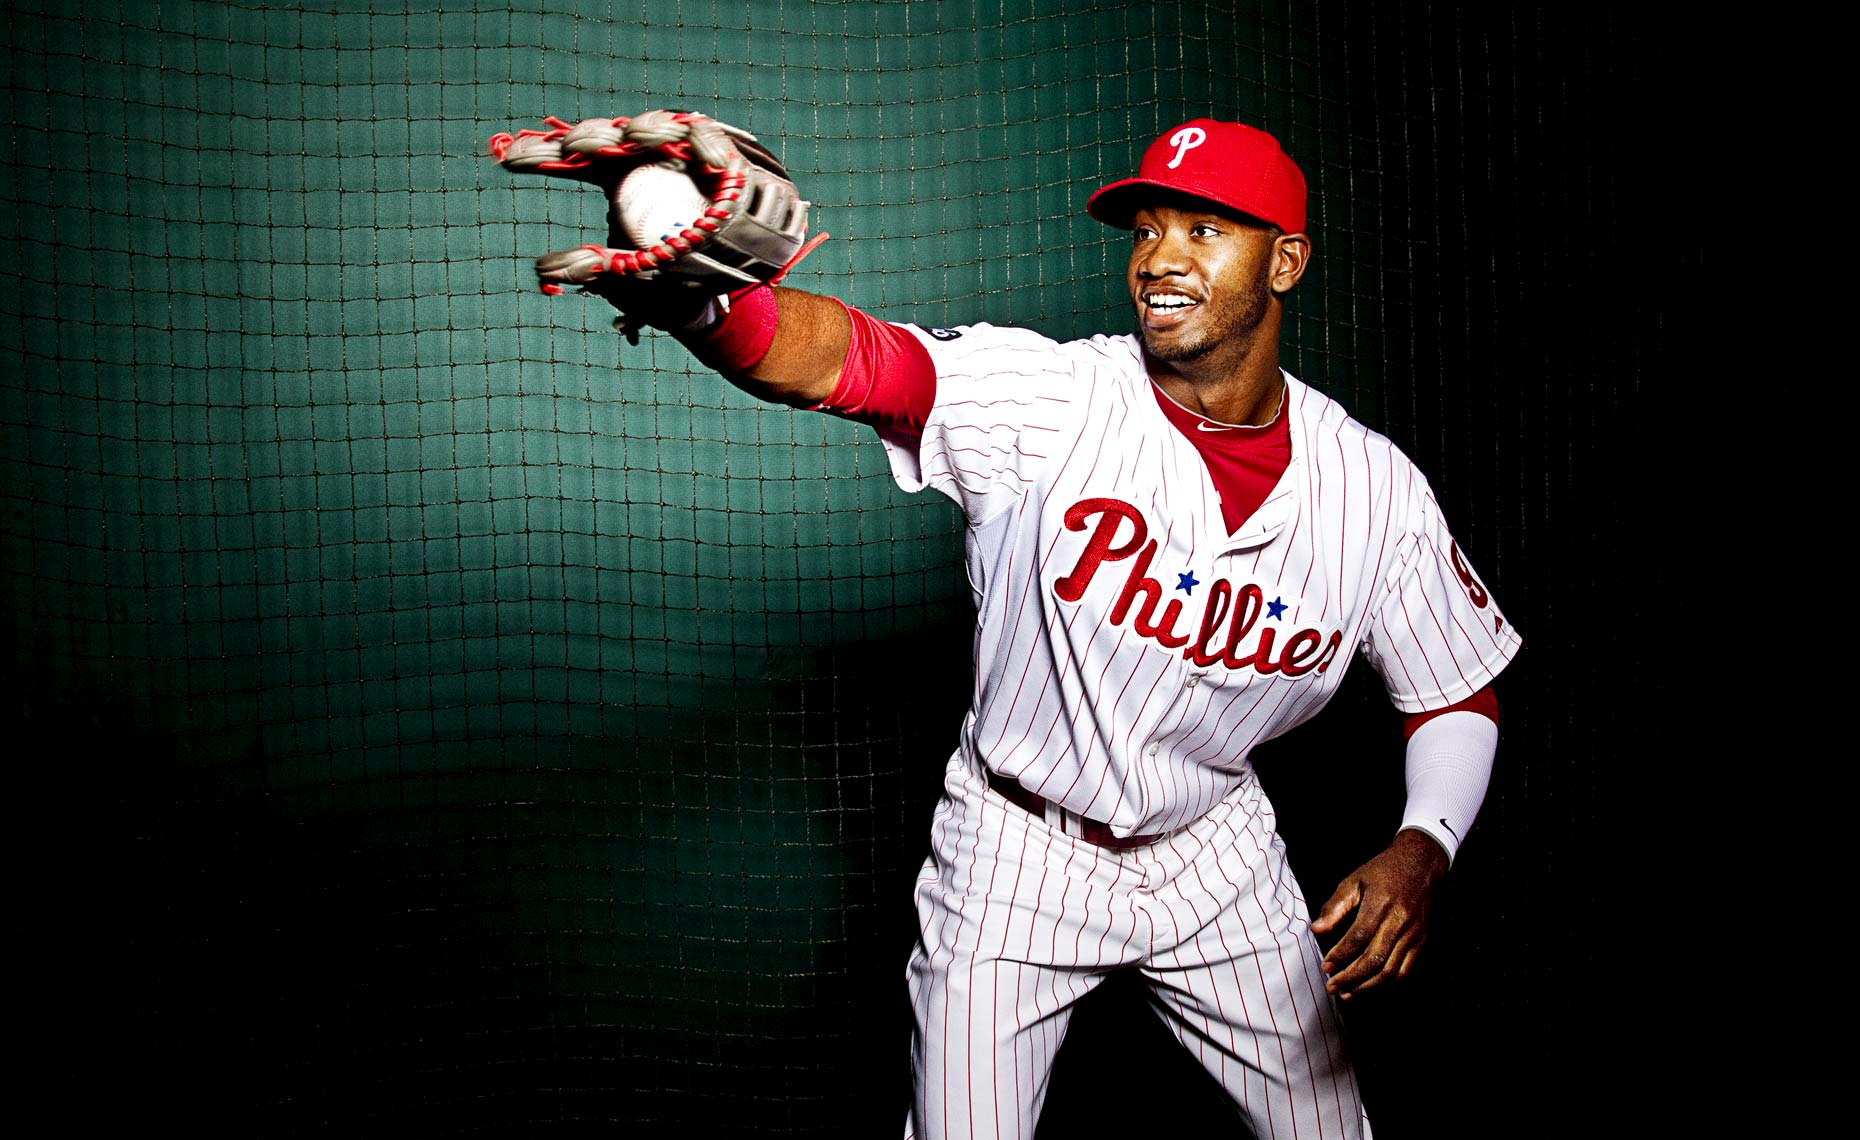 Philadelphia Photographer STEVE BOYLE - Domonic Brown, Philadephia Phillies